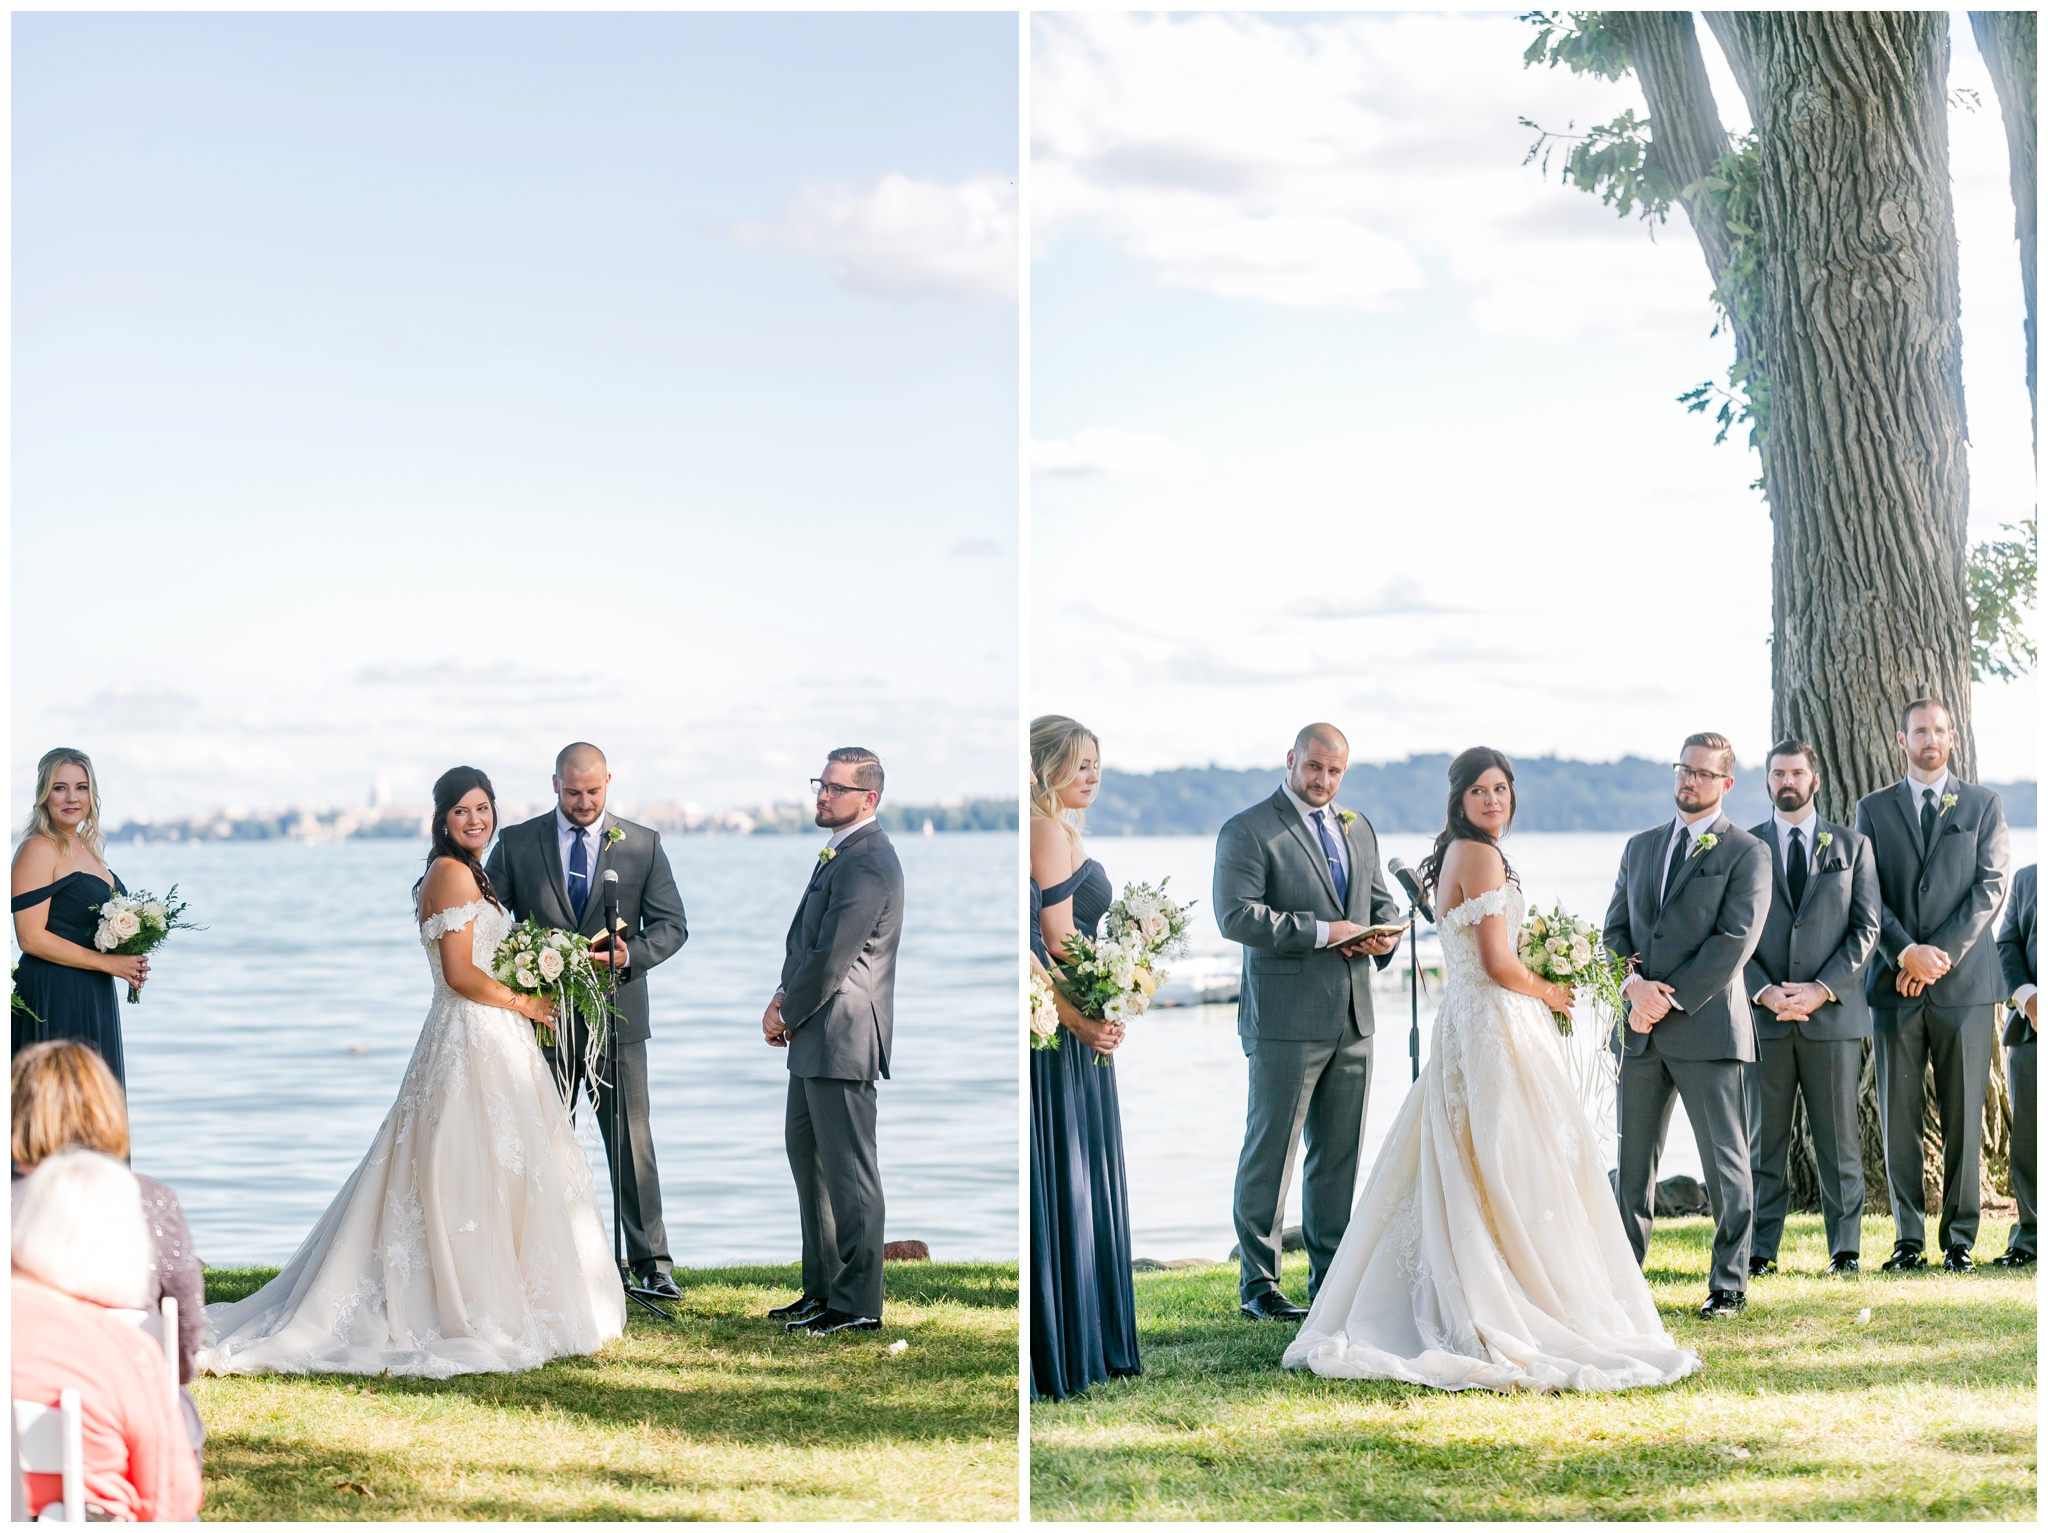 bishops_bay_country_club_wedding_middleton_wisconsin_caynay_photo_4713.jpg